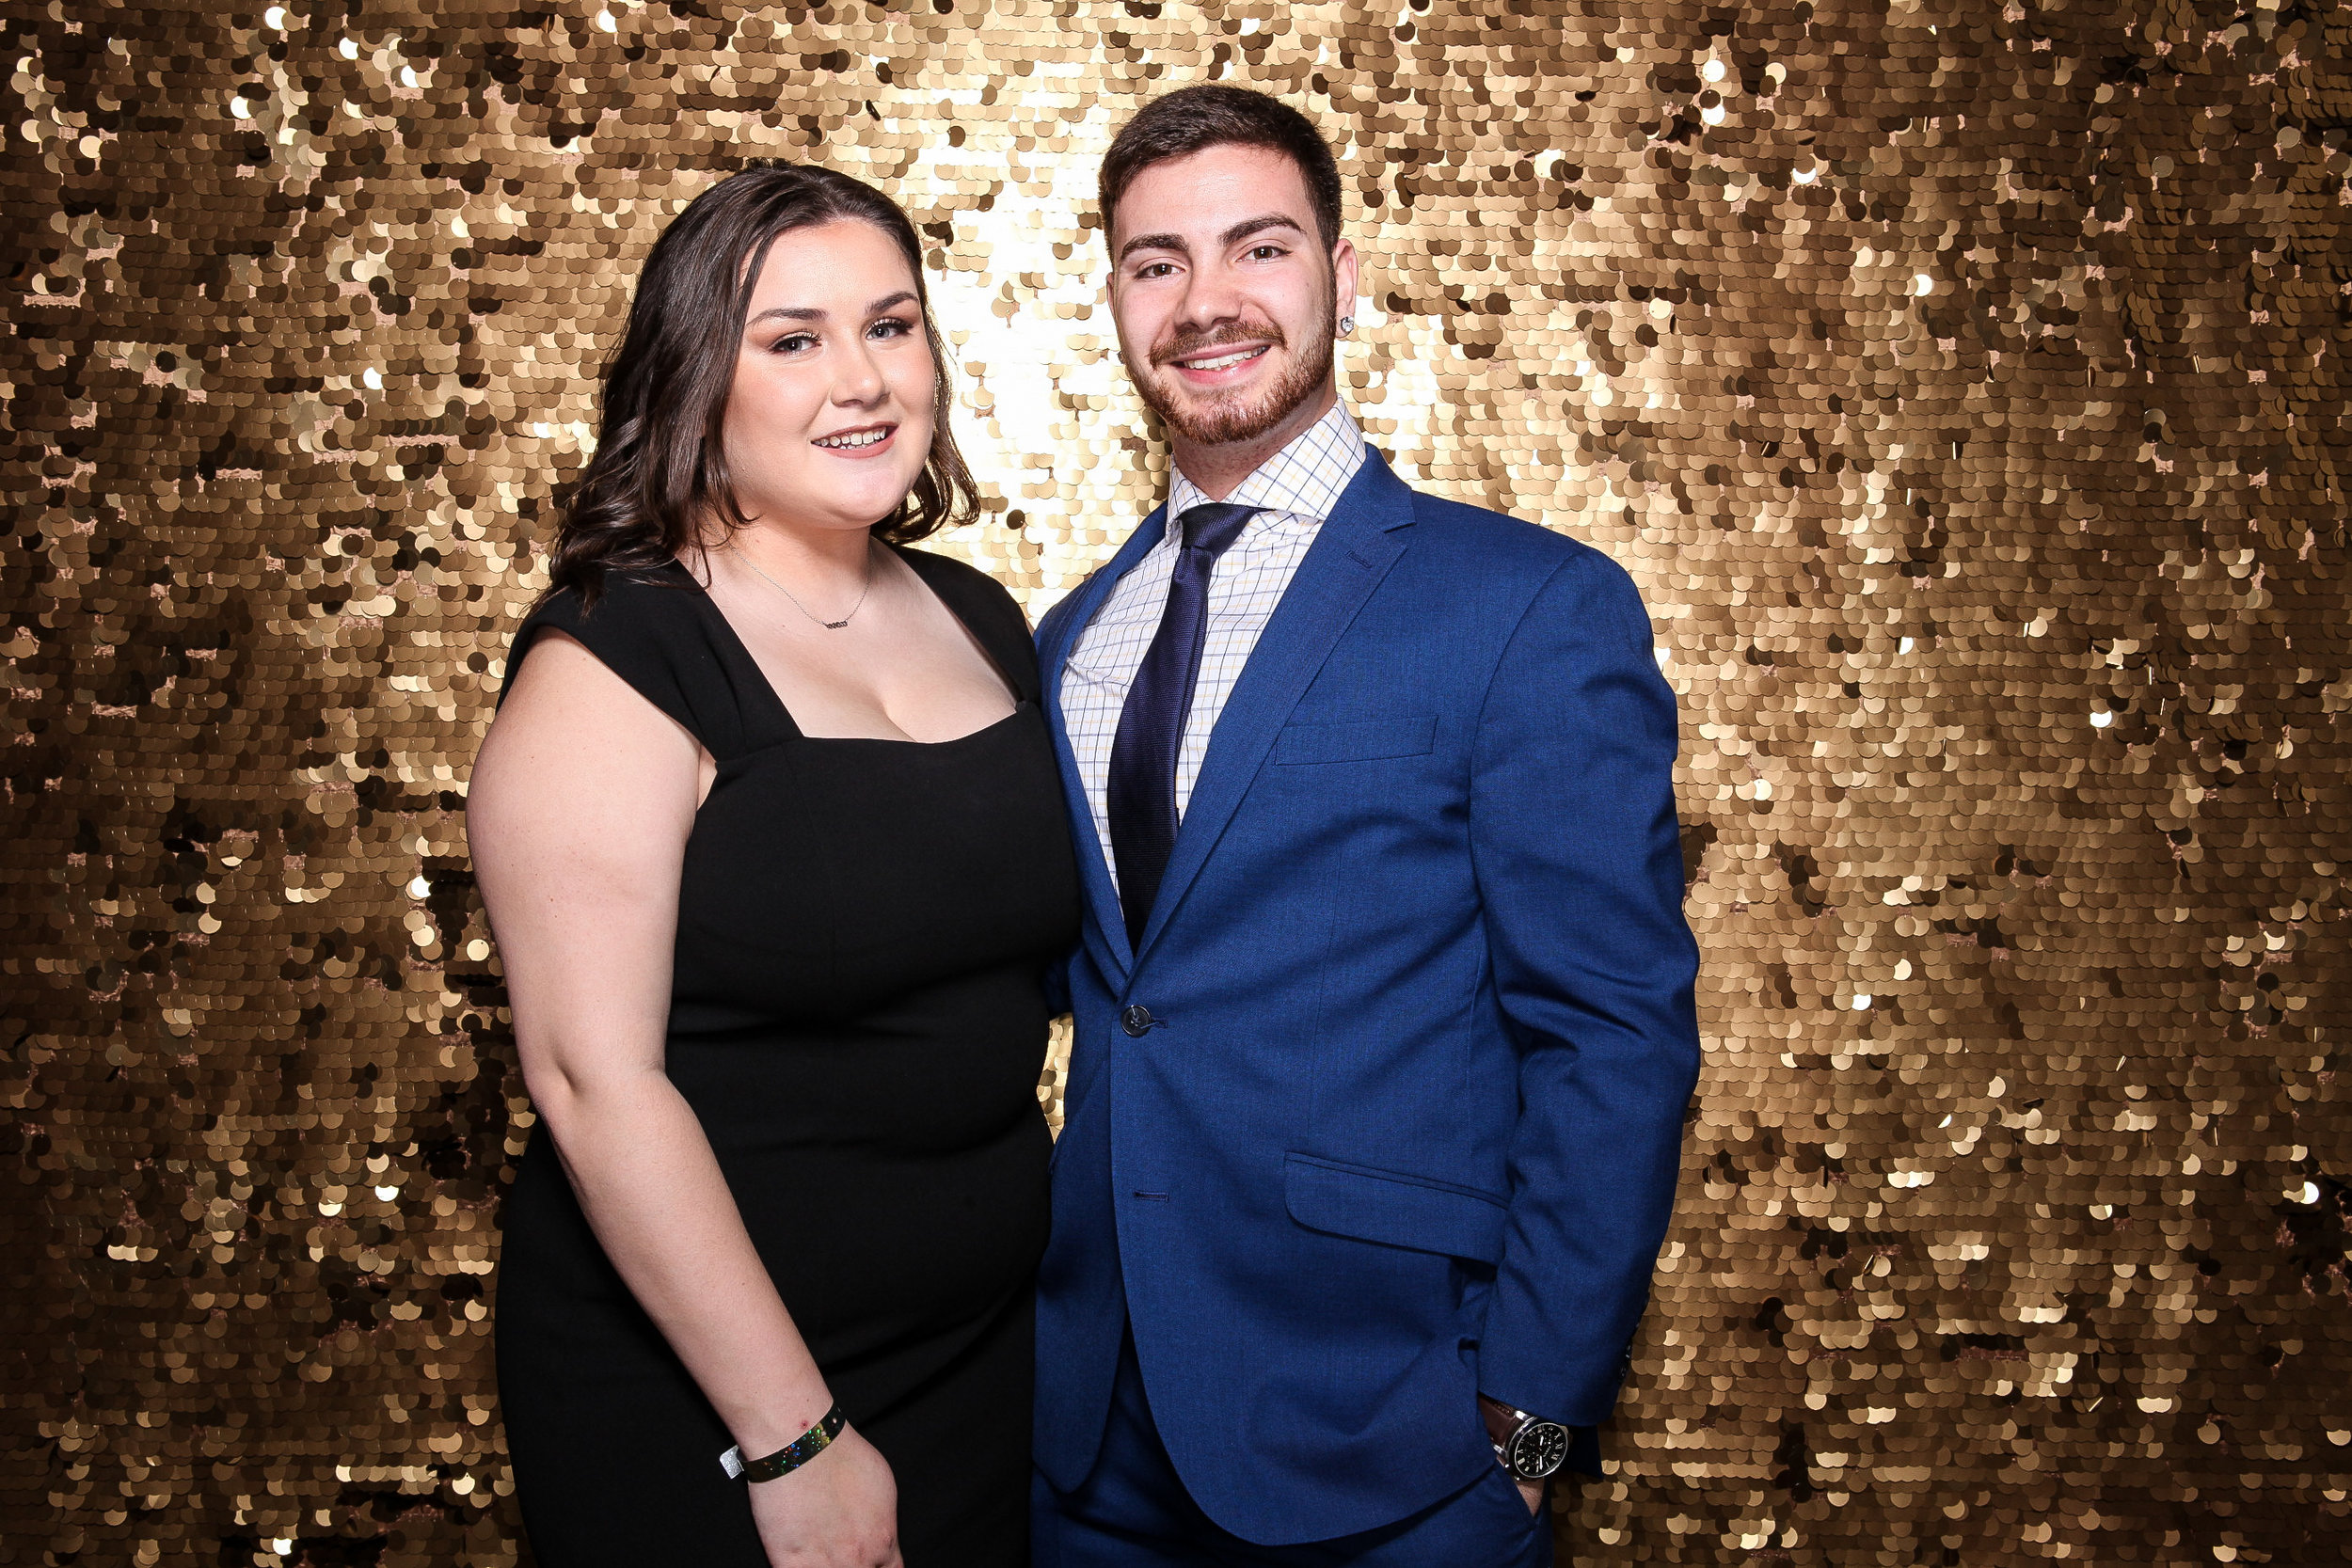 20190503_Adelphi_Senior_Formal-116.jpg